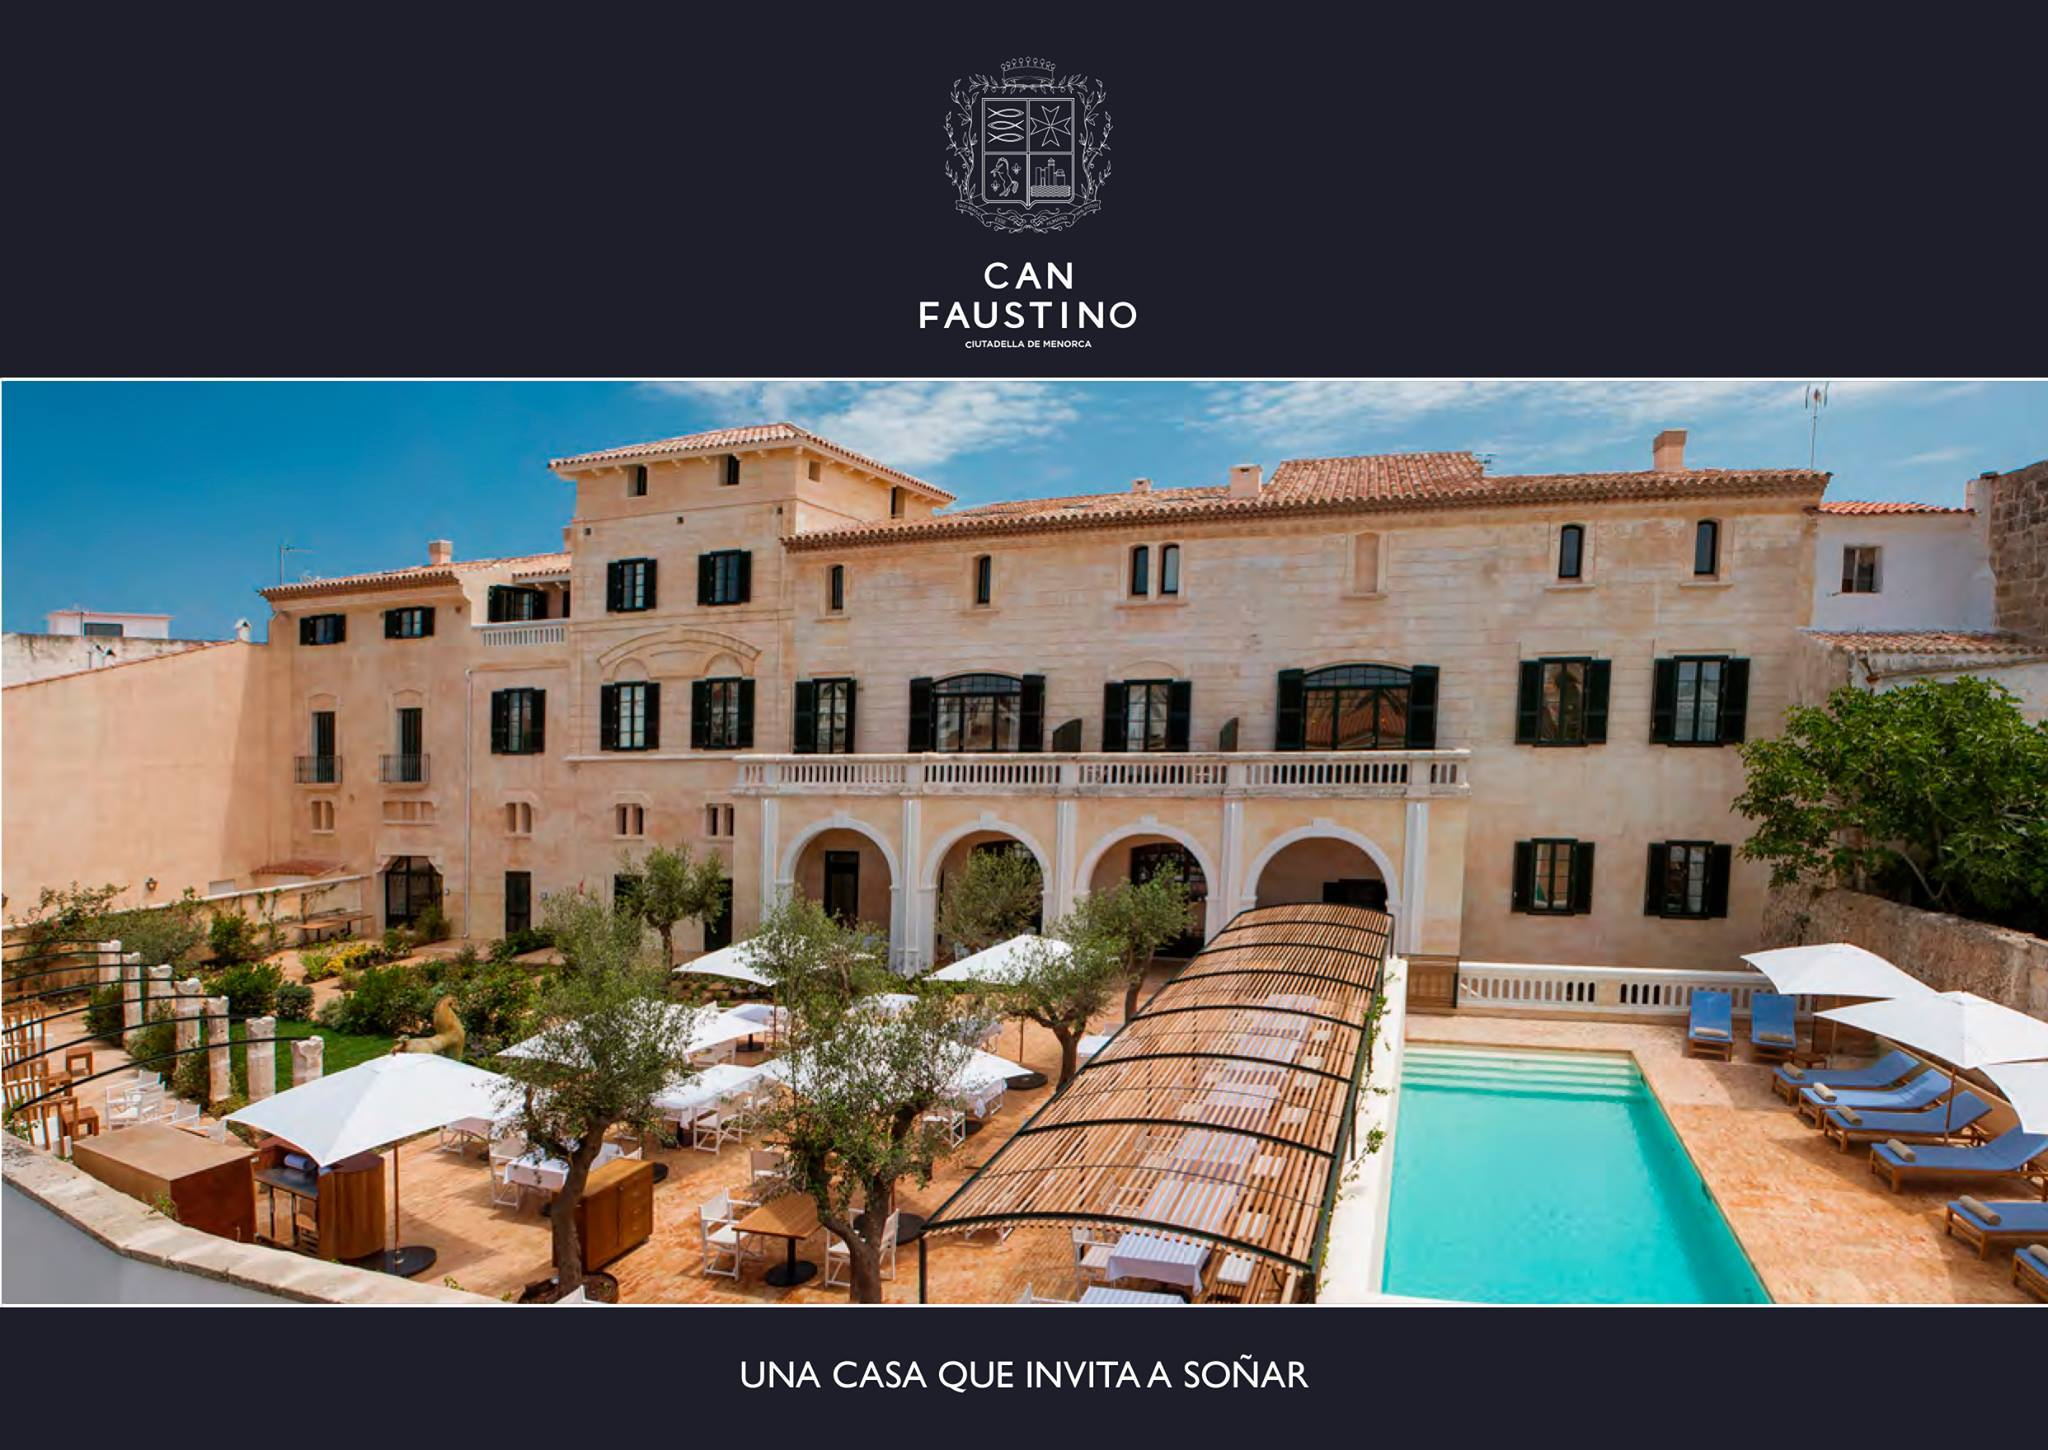 Hotel Can Faustino